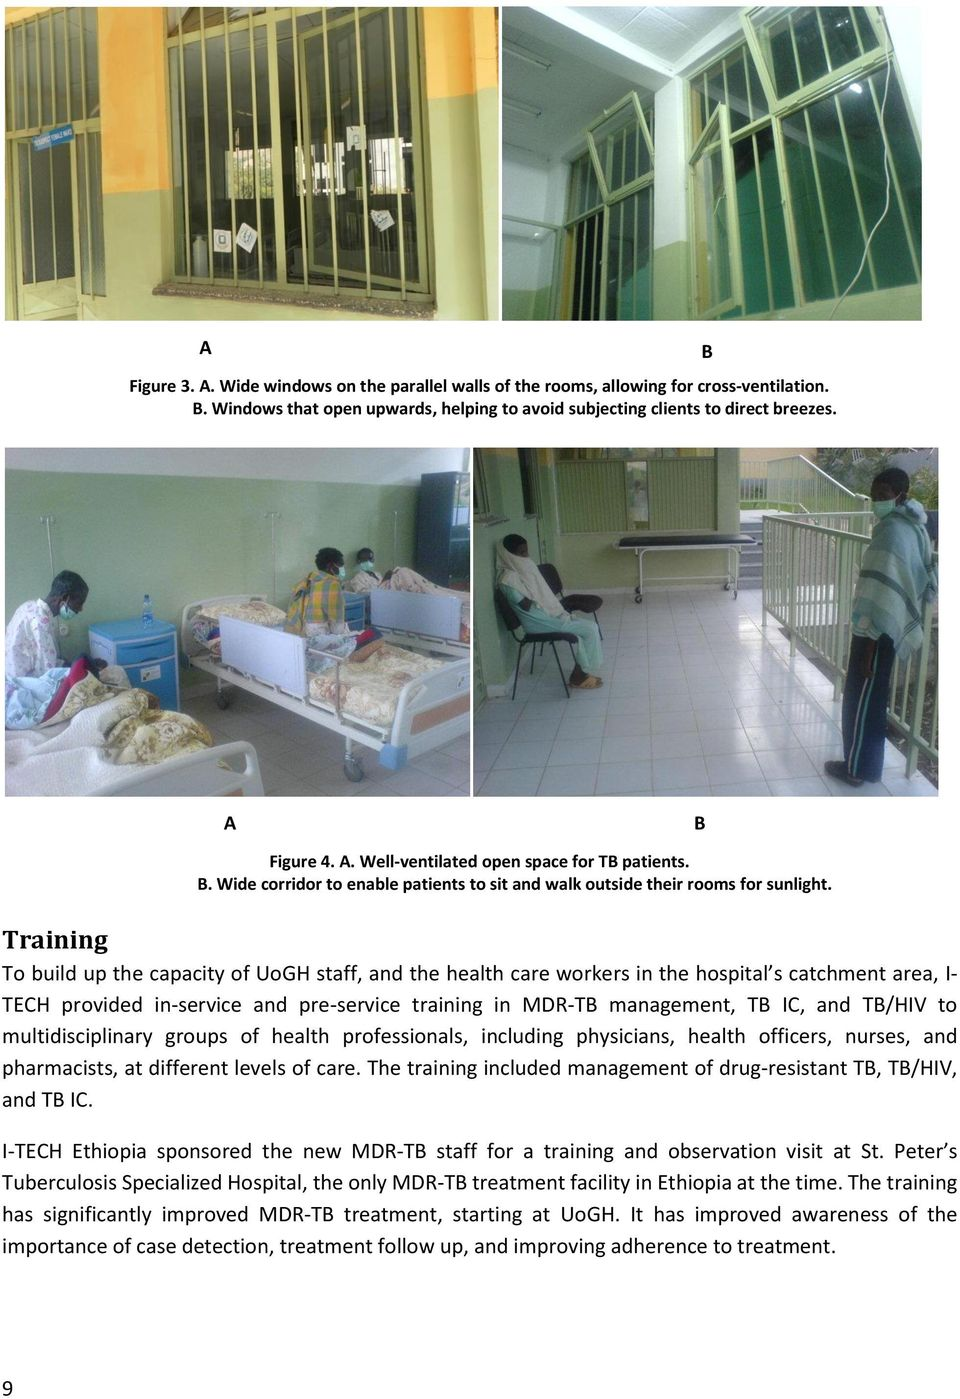 Training To build up the capacity of UoGH staff, and the health care workers in the hospital s catchment area, I- TECH provided in-service and pre-service training in MDR-TB management, TB IC, and